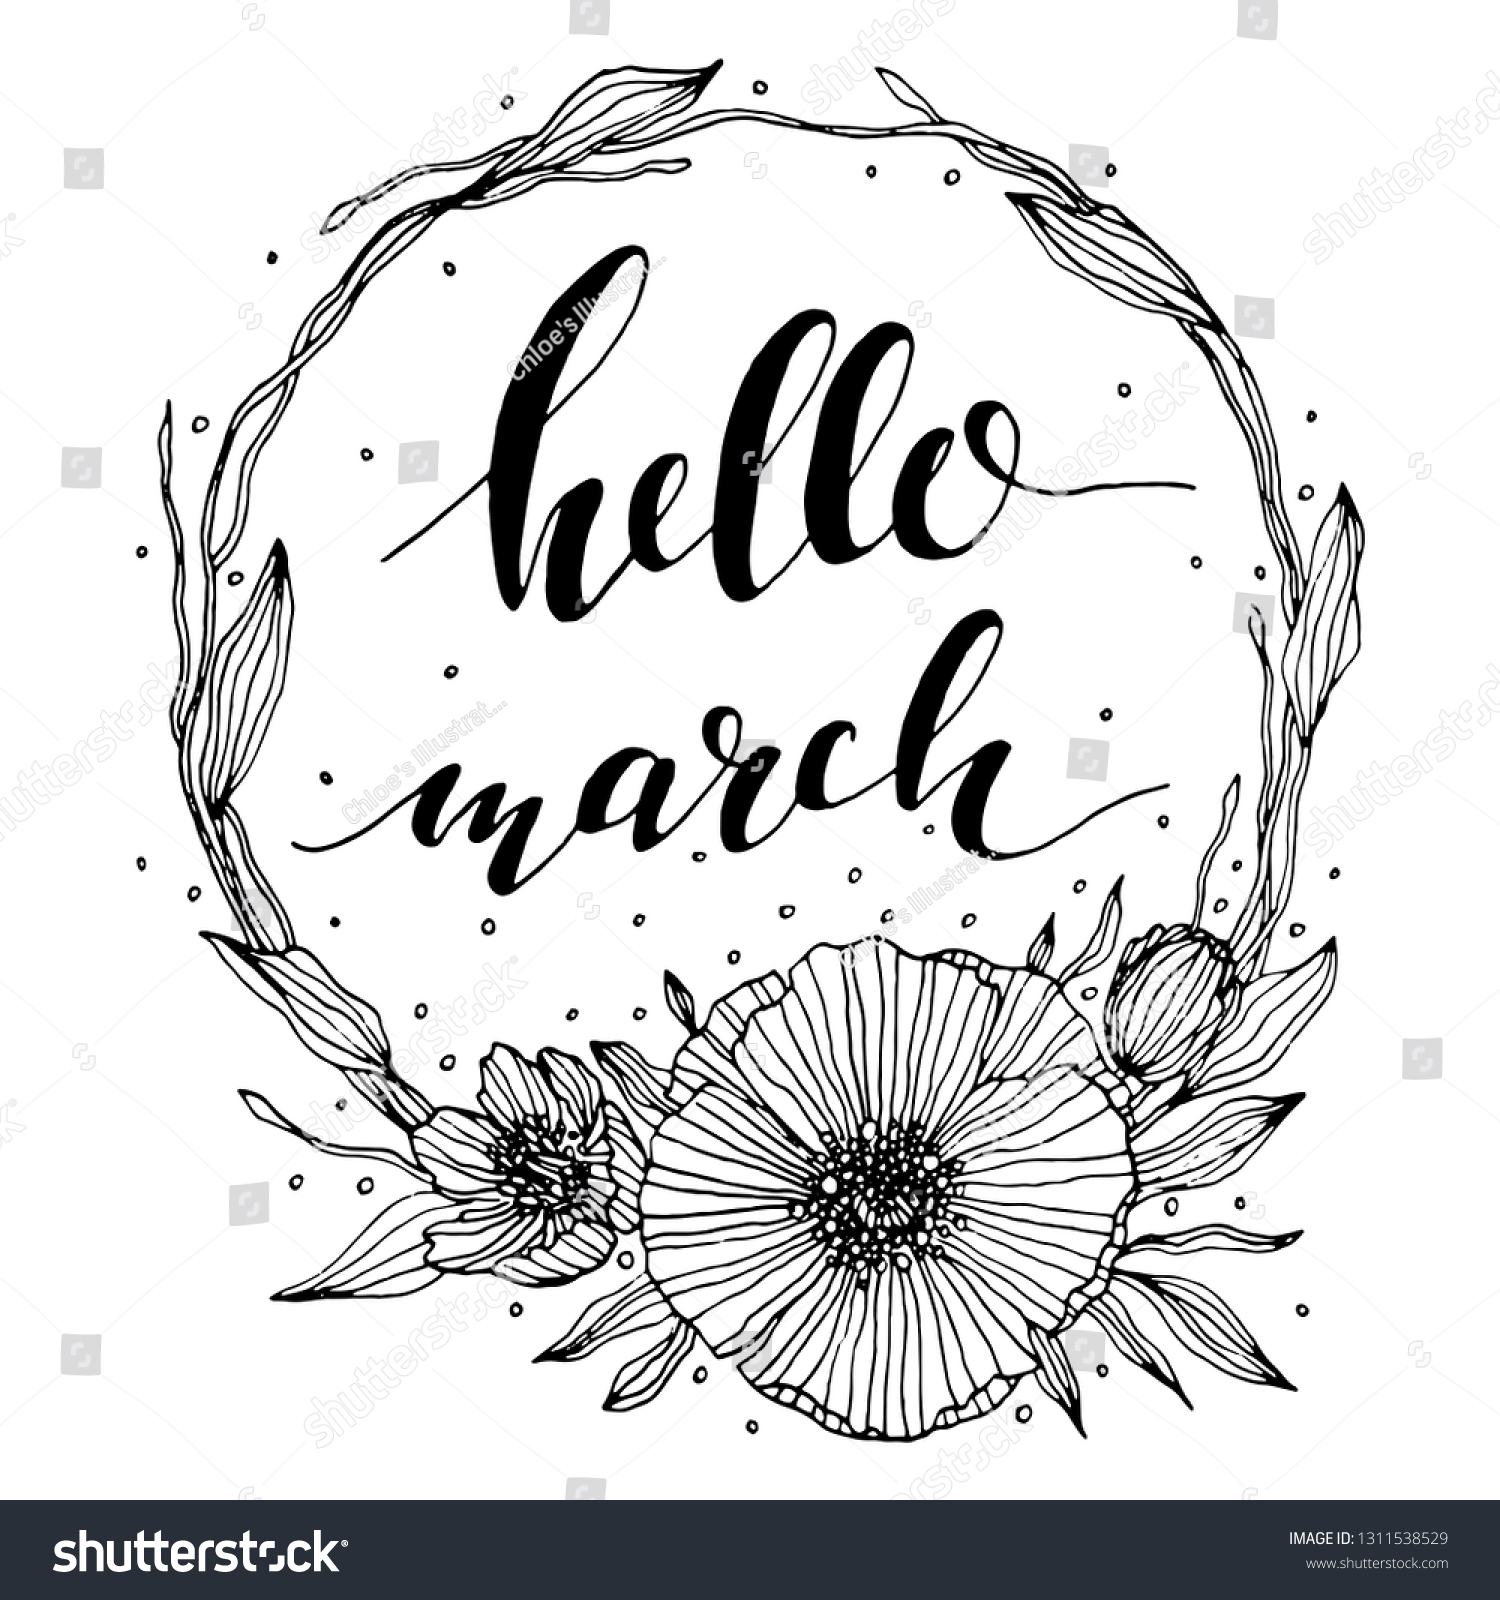 stock-vector-vector-hello-march-letterin